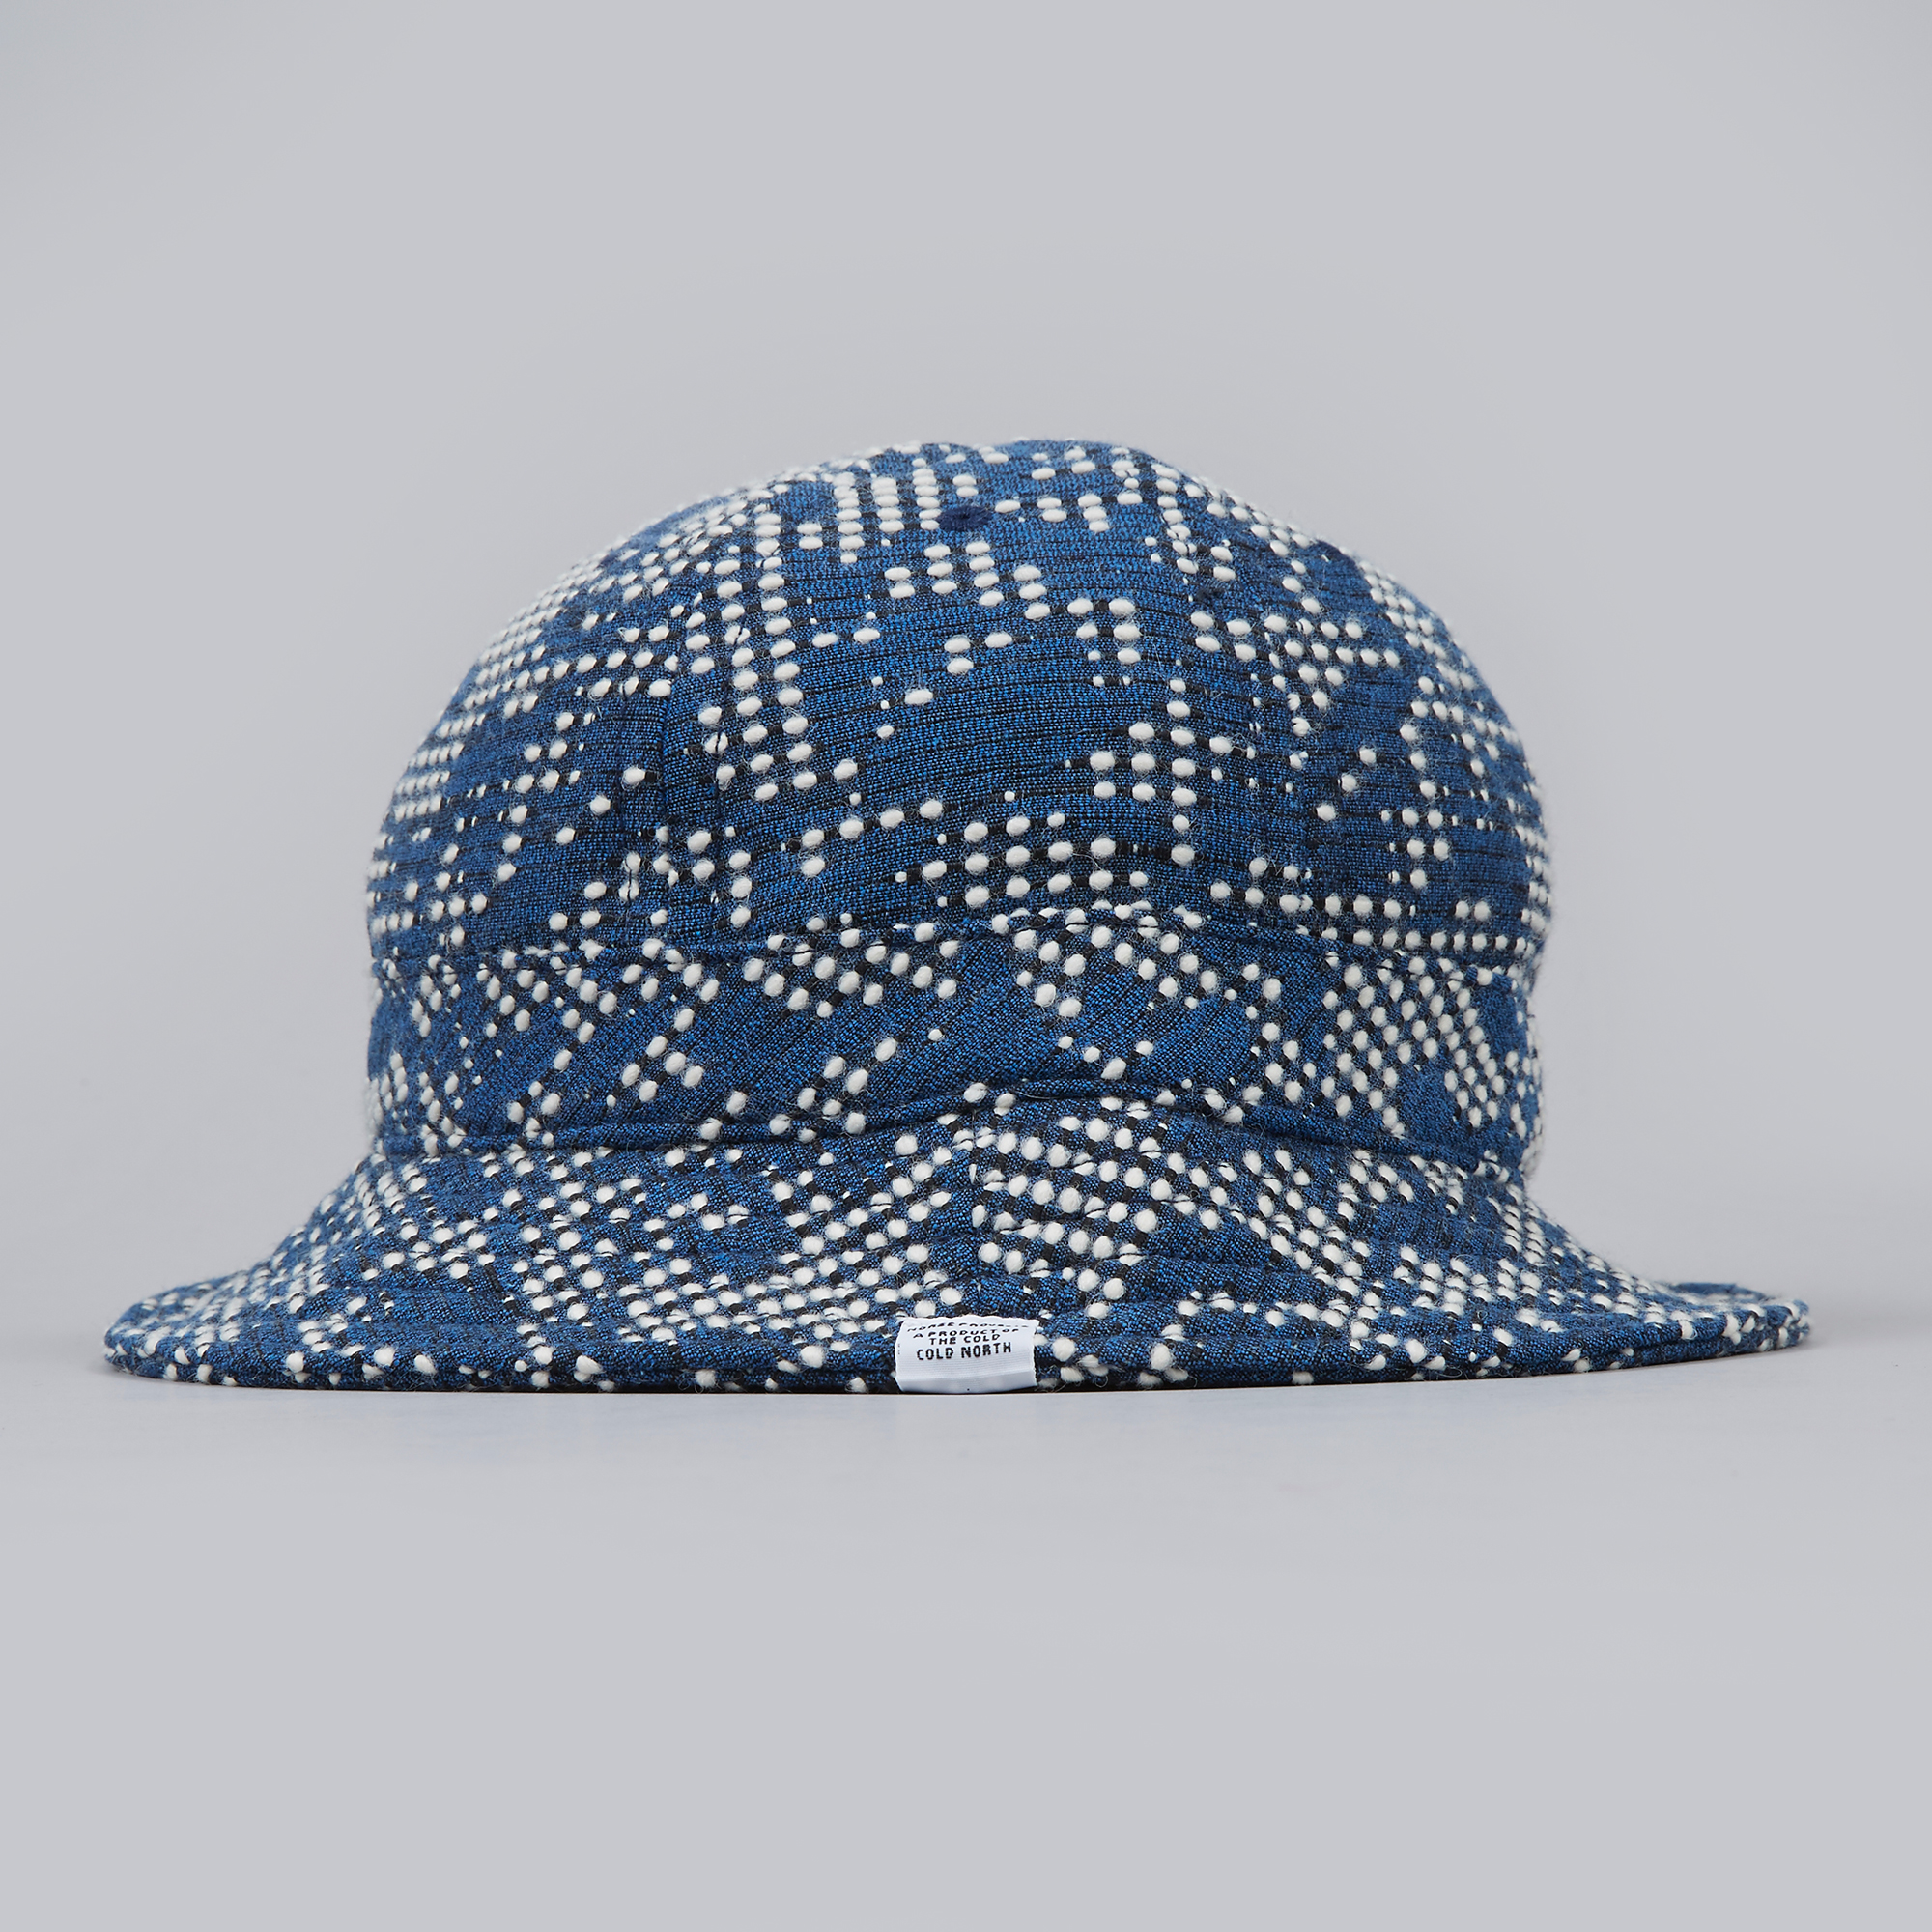 a6c5f342acb Norse Projects Bubble Weaver Bucket Hat - Blue